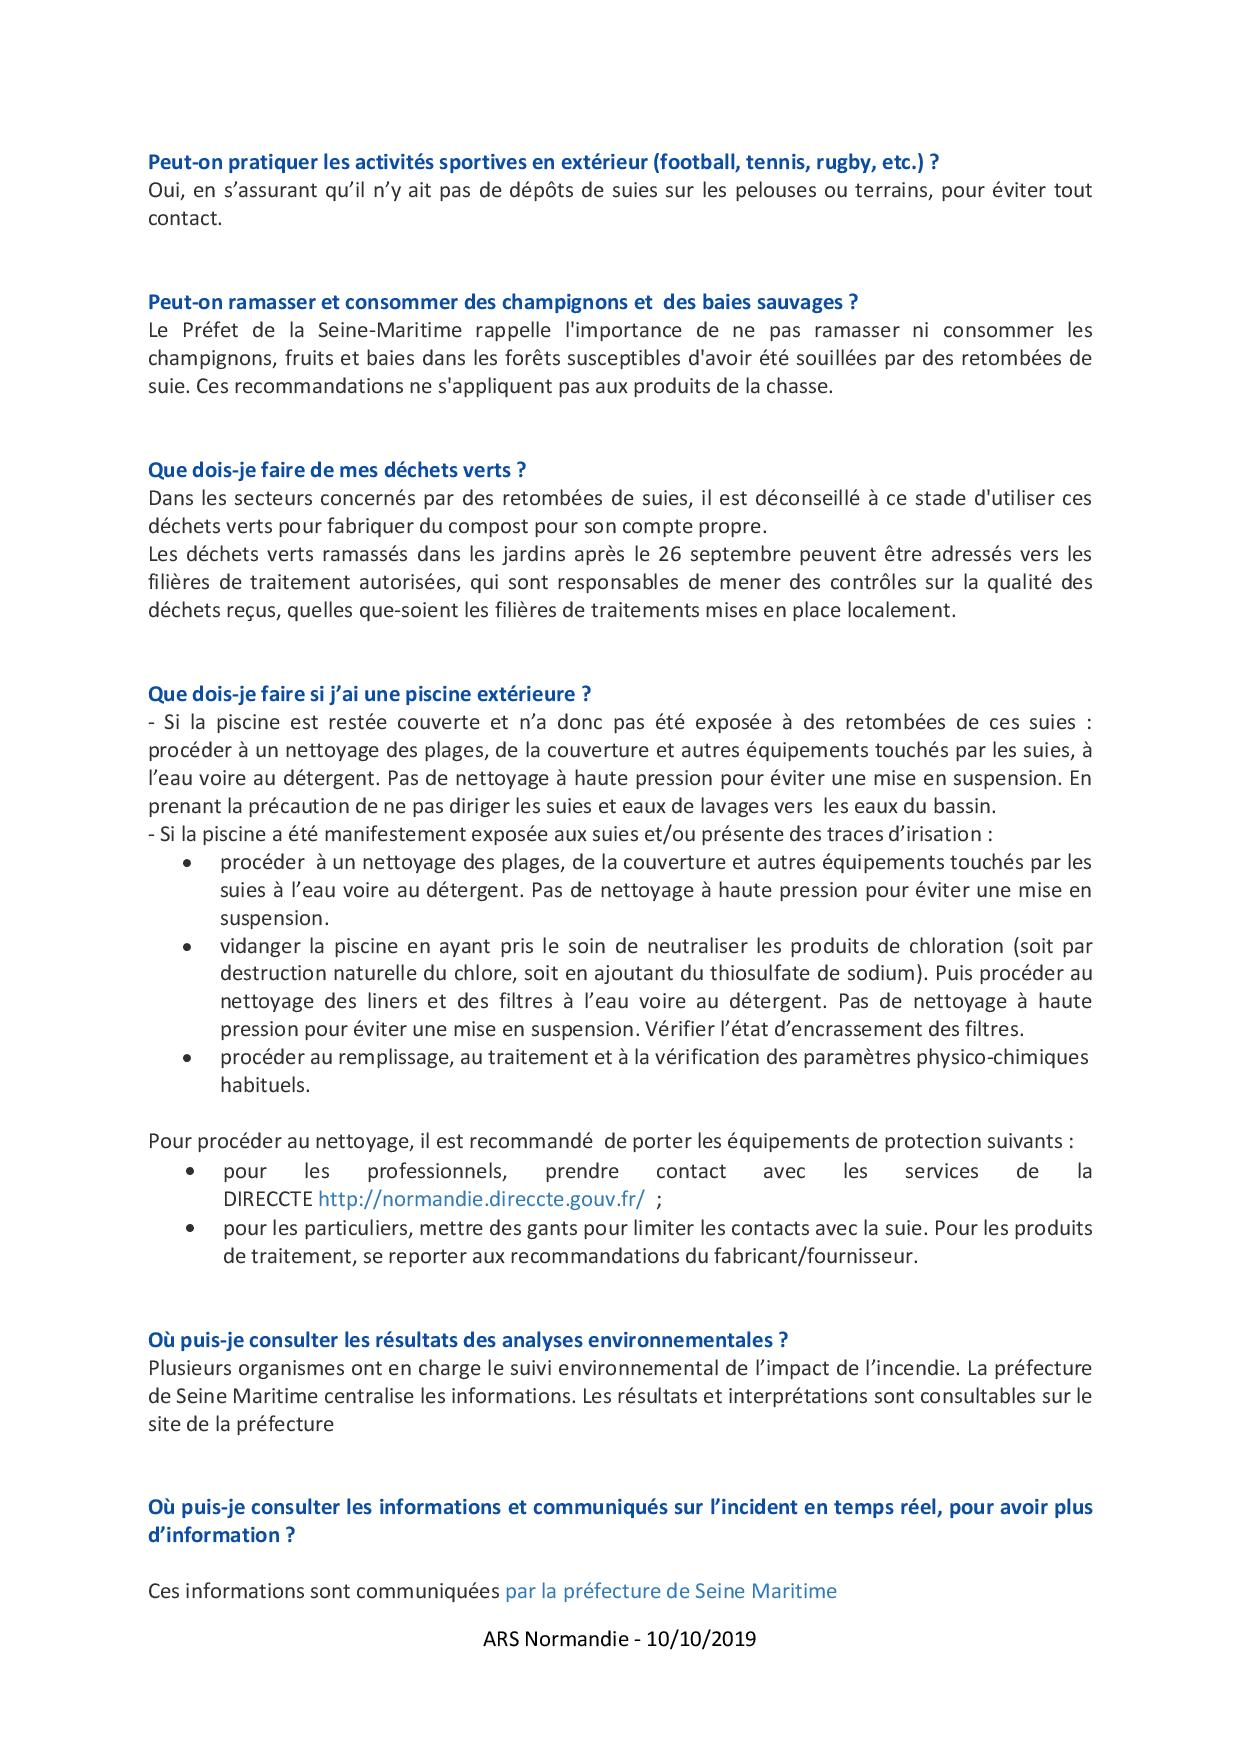 questions-reponses ARS-page-004